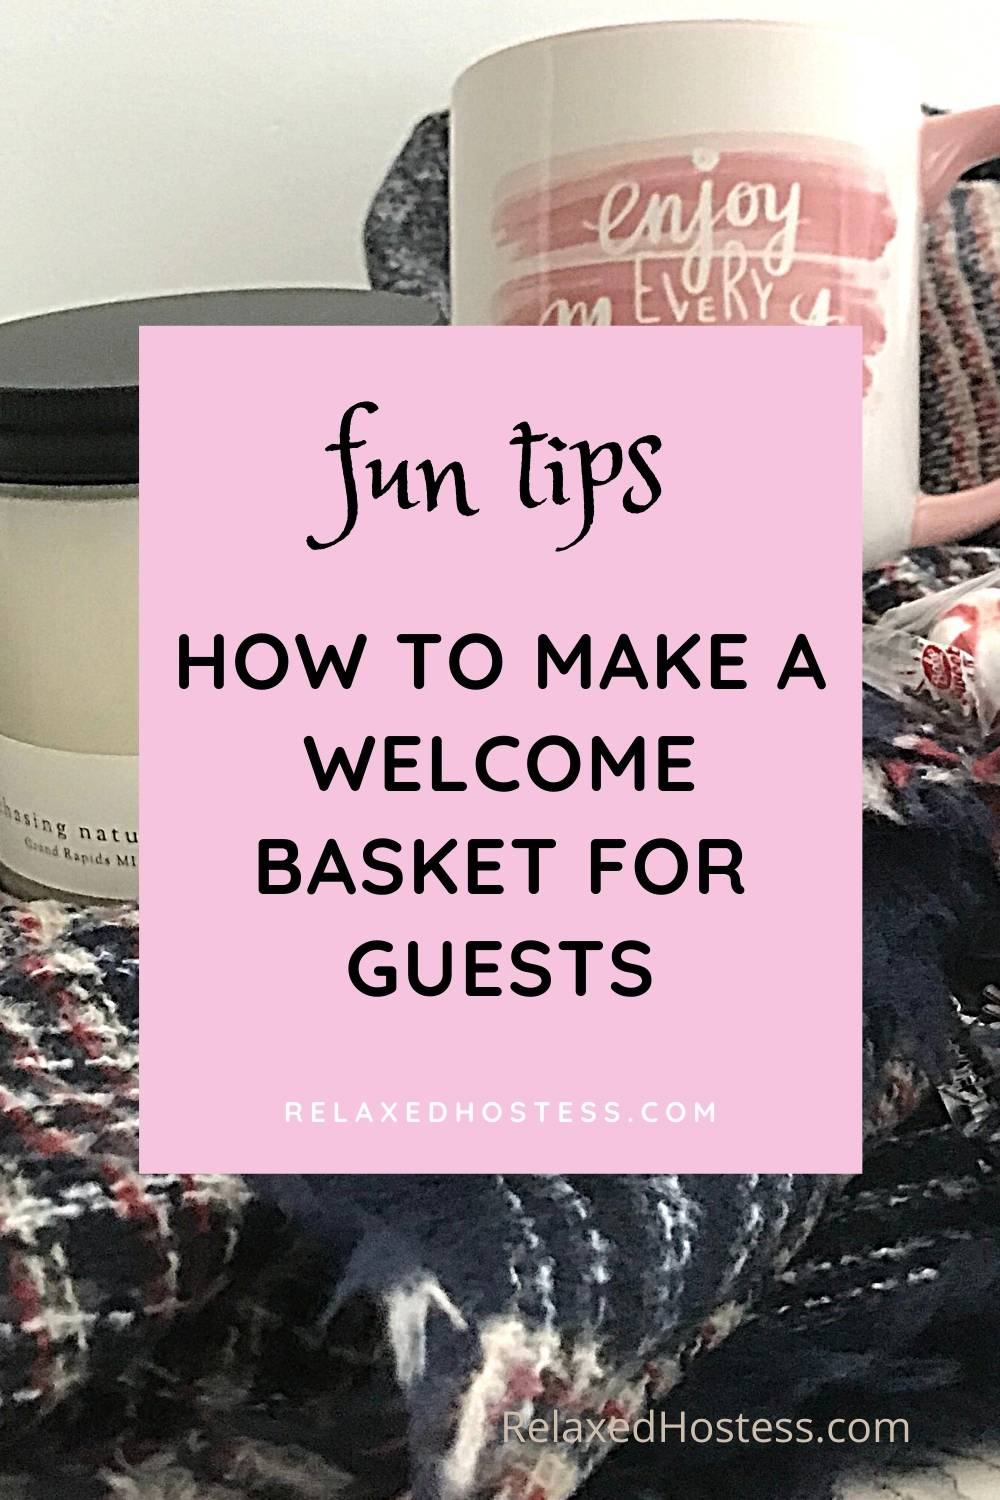 How to make a welcome basket for guests, fun tips. RelaxedHostess.com. A candle, mug and peppermint candy on a plaid shawl.